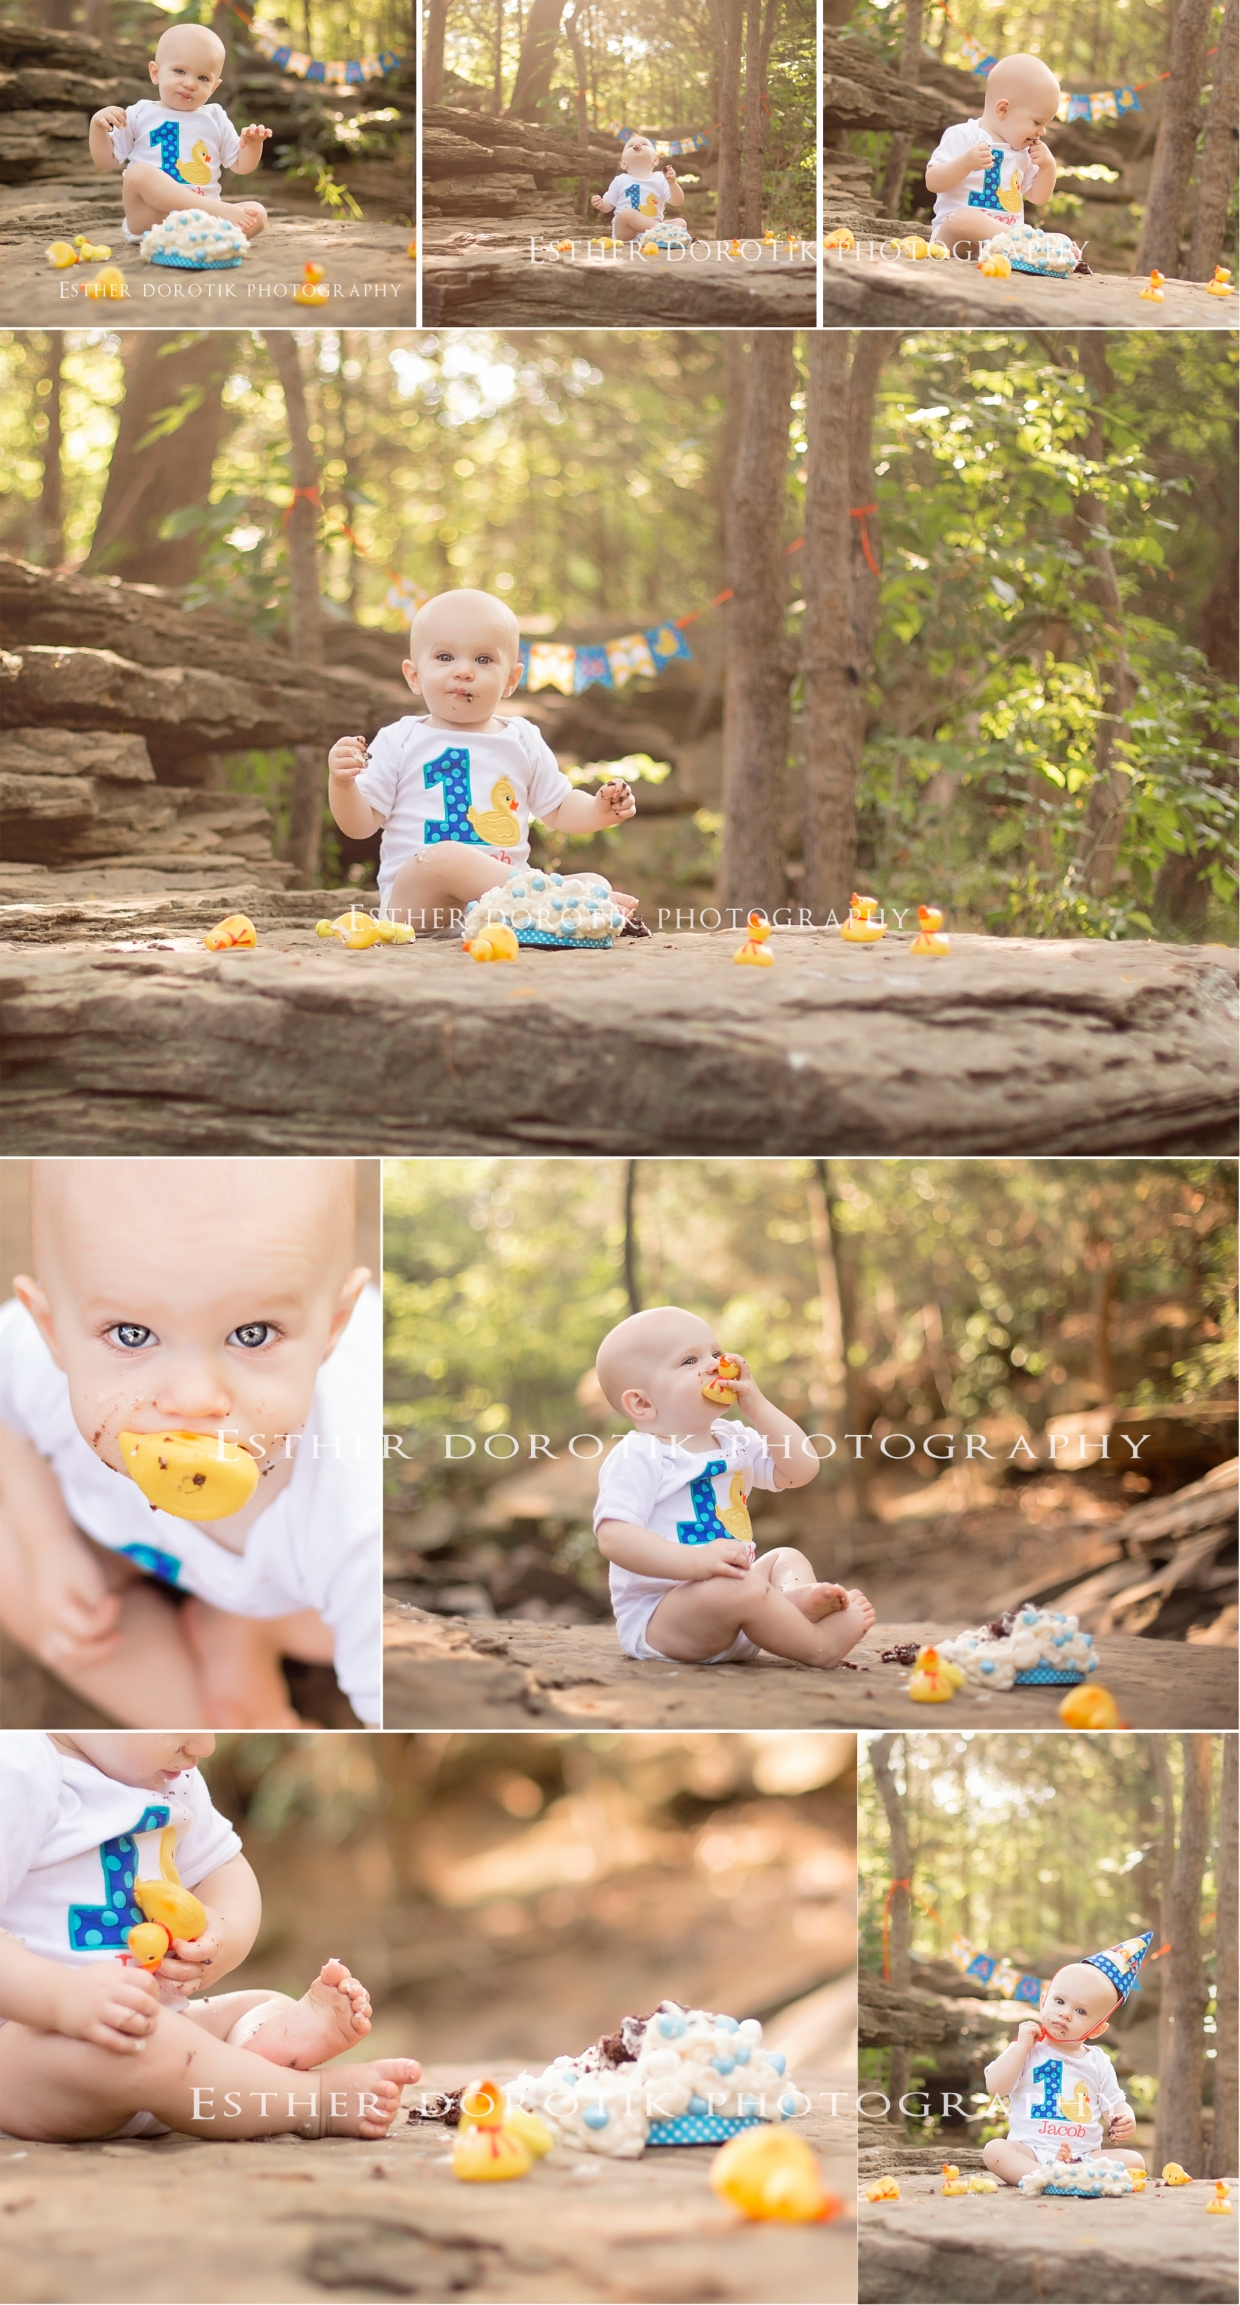 one-year-old-smash-cake-session-with-rubber-ducks-in-creek-area-by-Dallas-baby-photographer